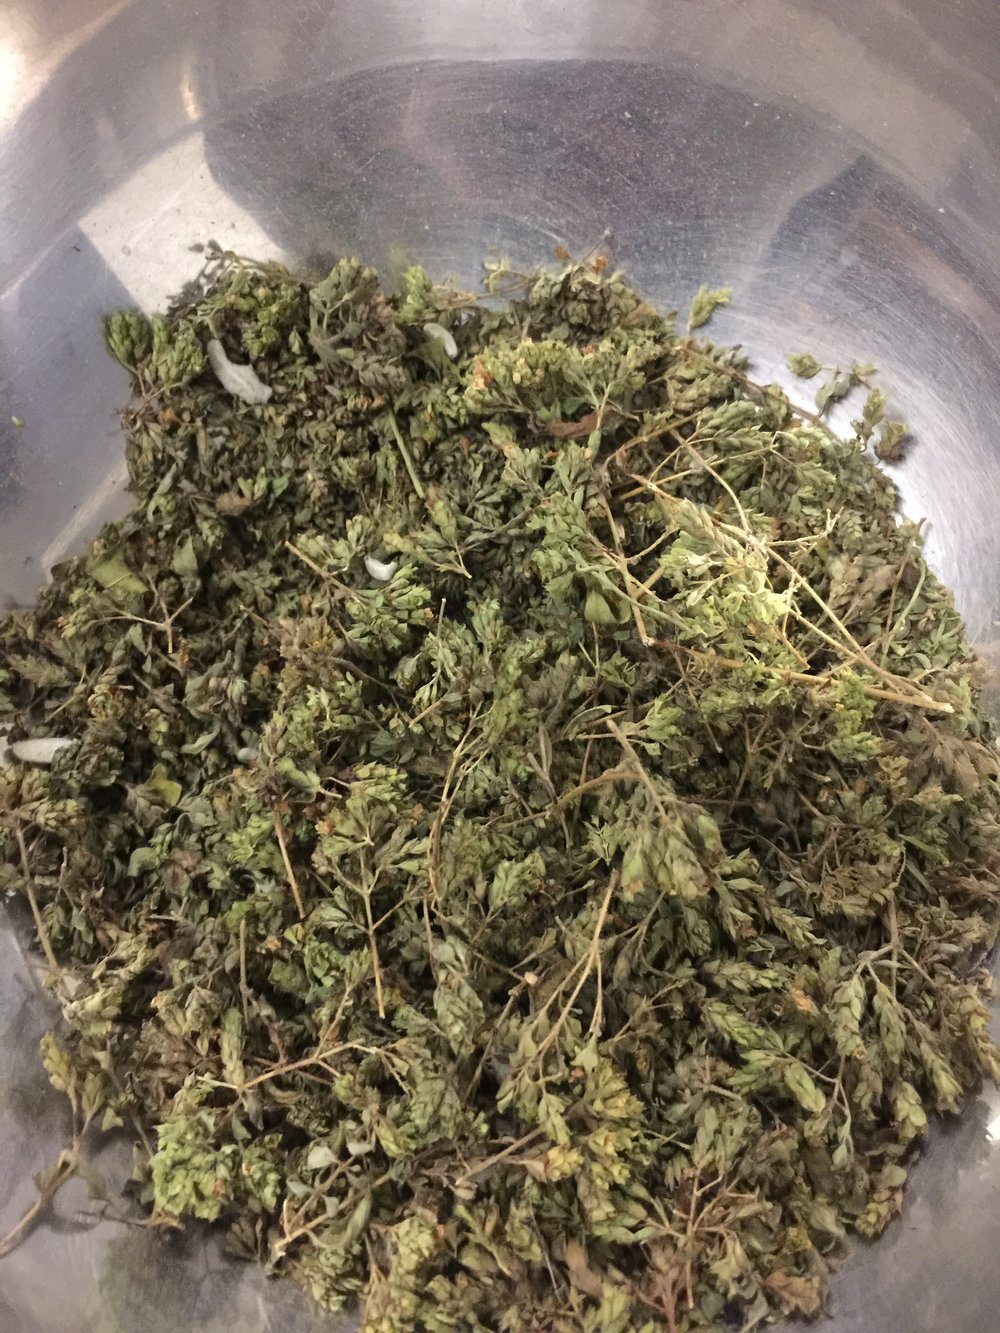 Wild oregano and wild thyme, from the hills of Crete.